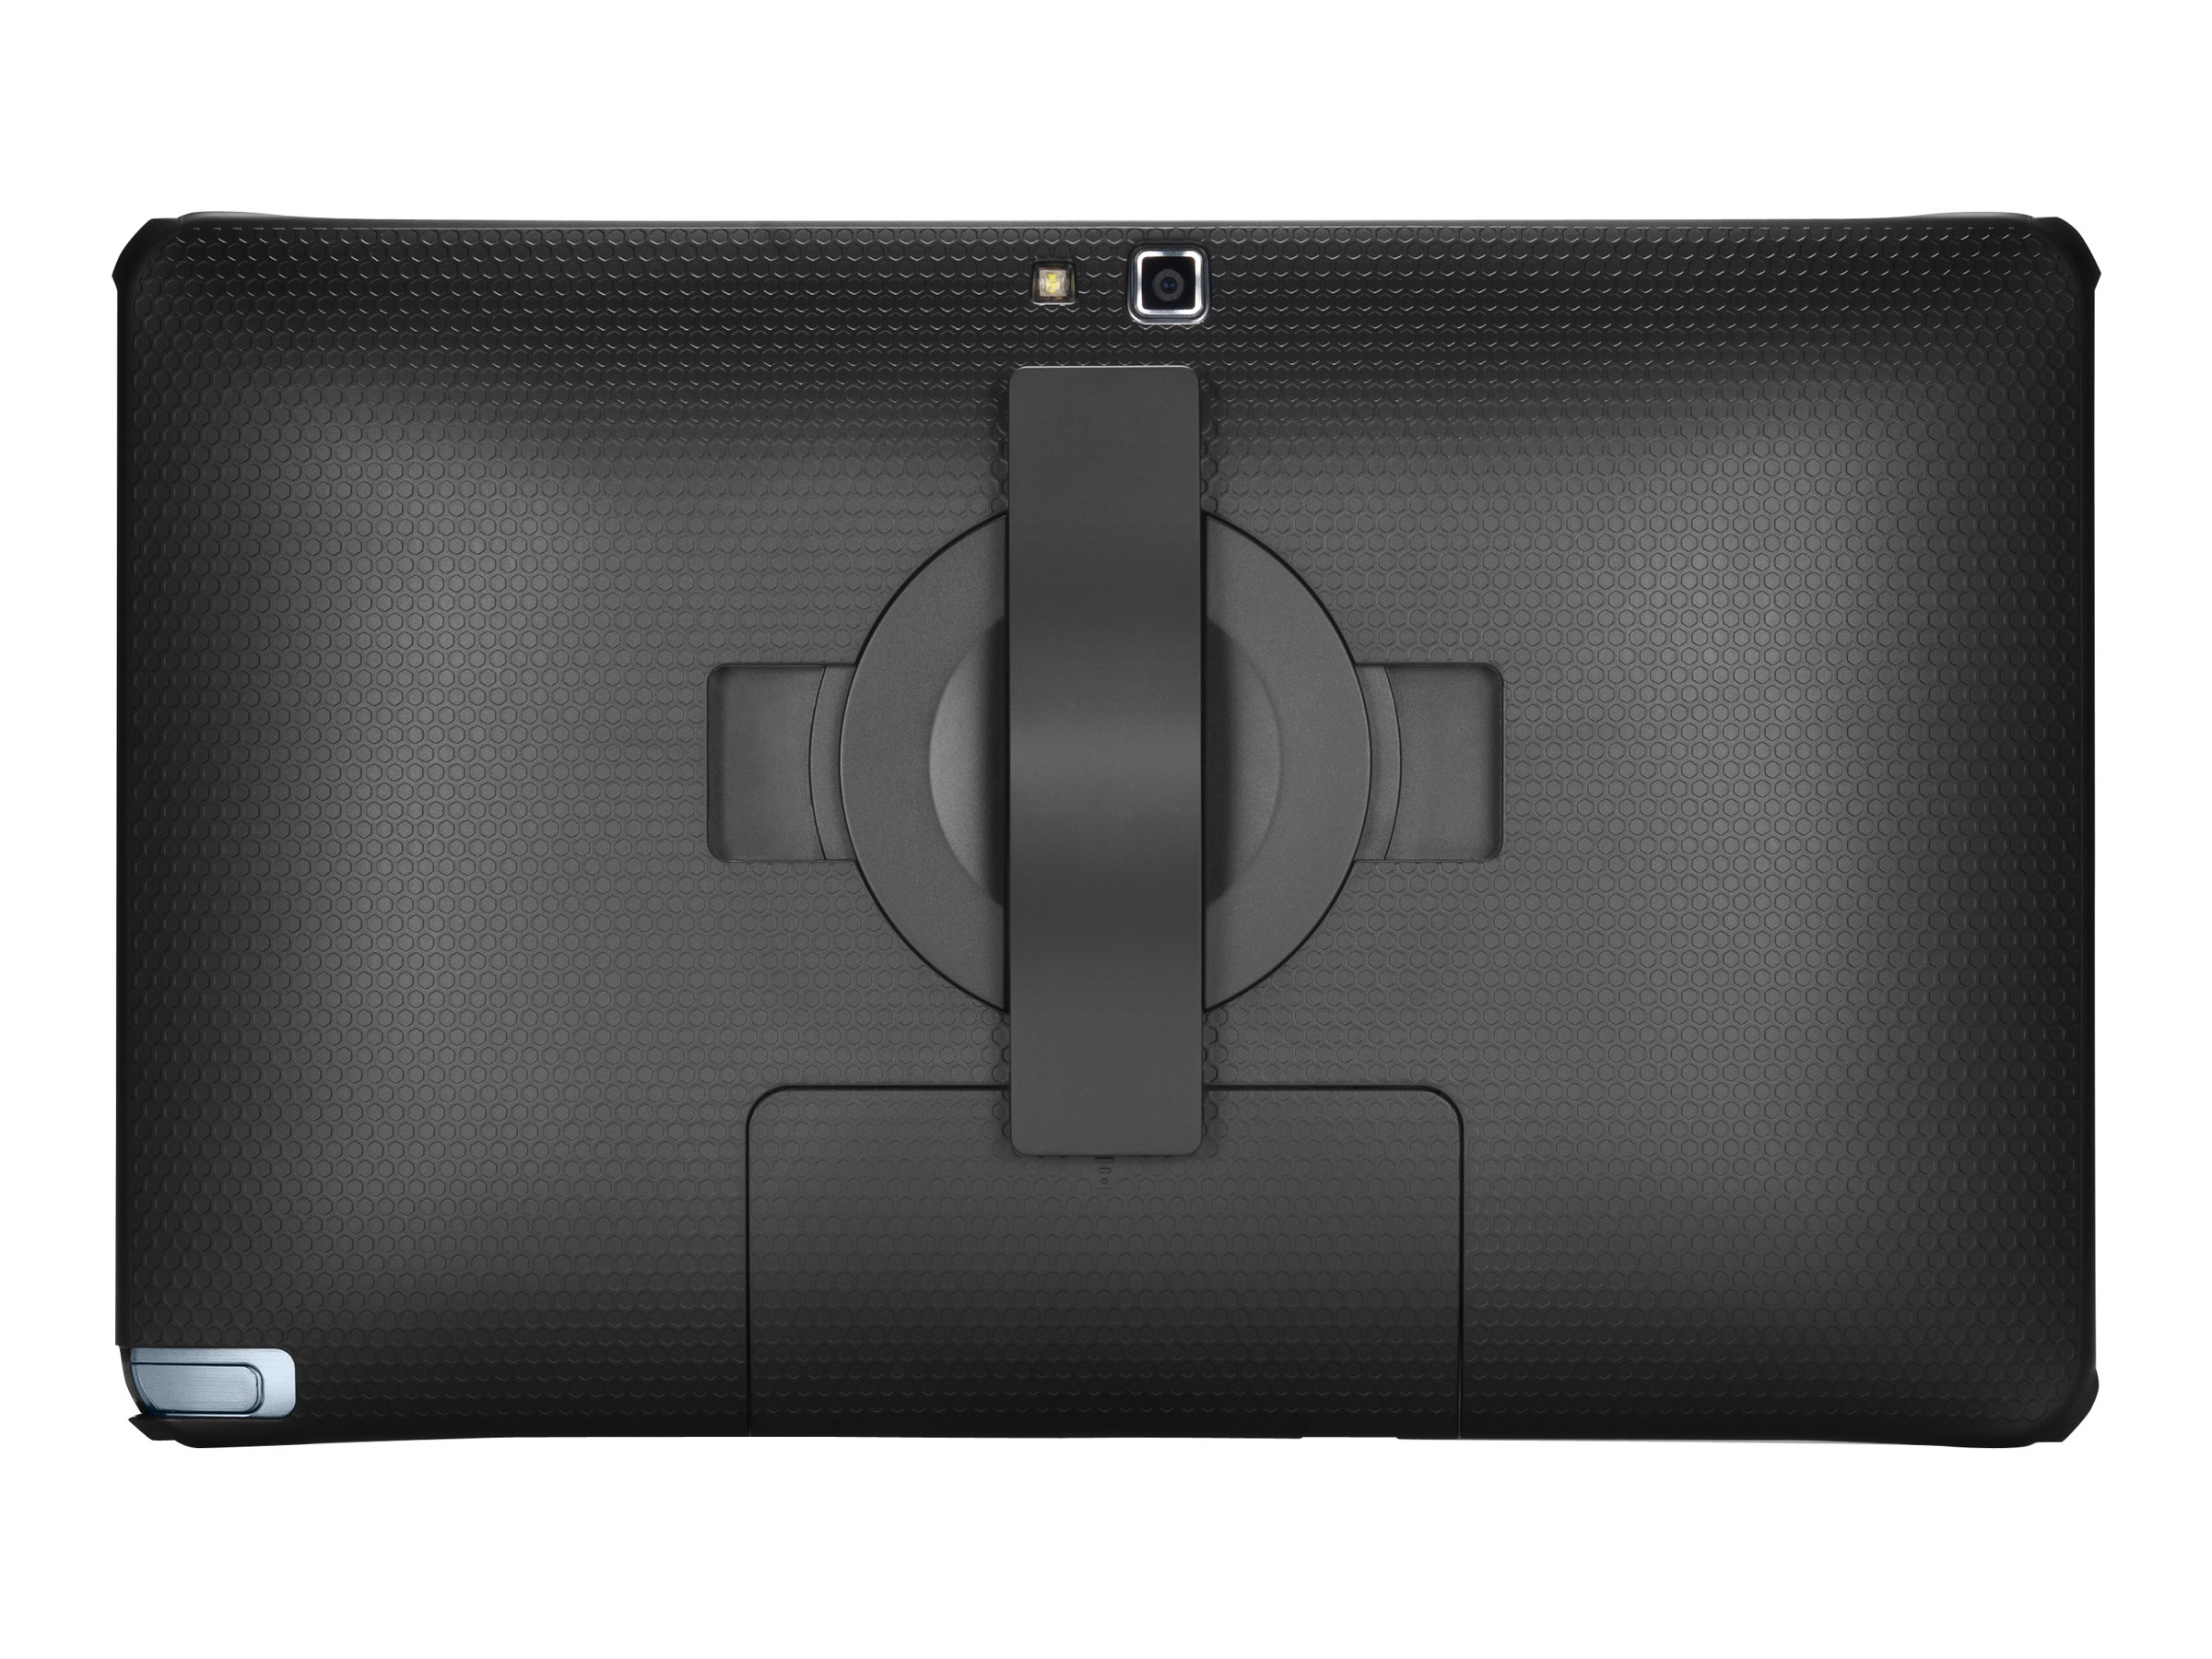 Samsung ATIV Tablet PC 500T Case with Hand Strap, AA-BR0N11B/US